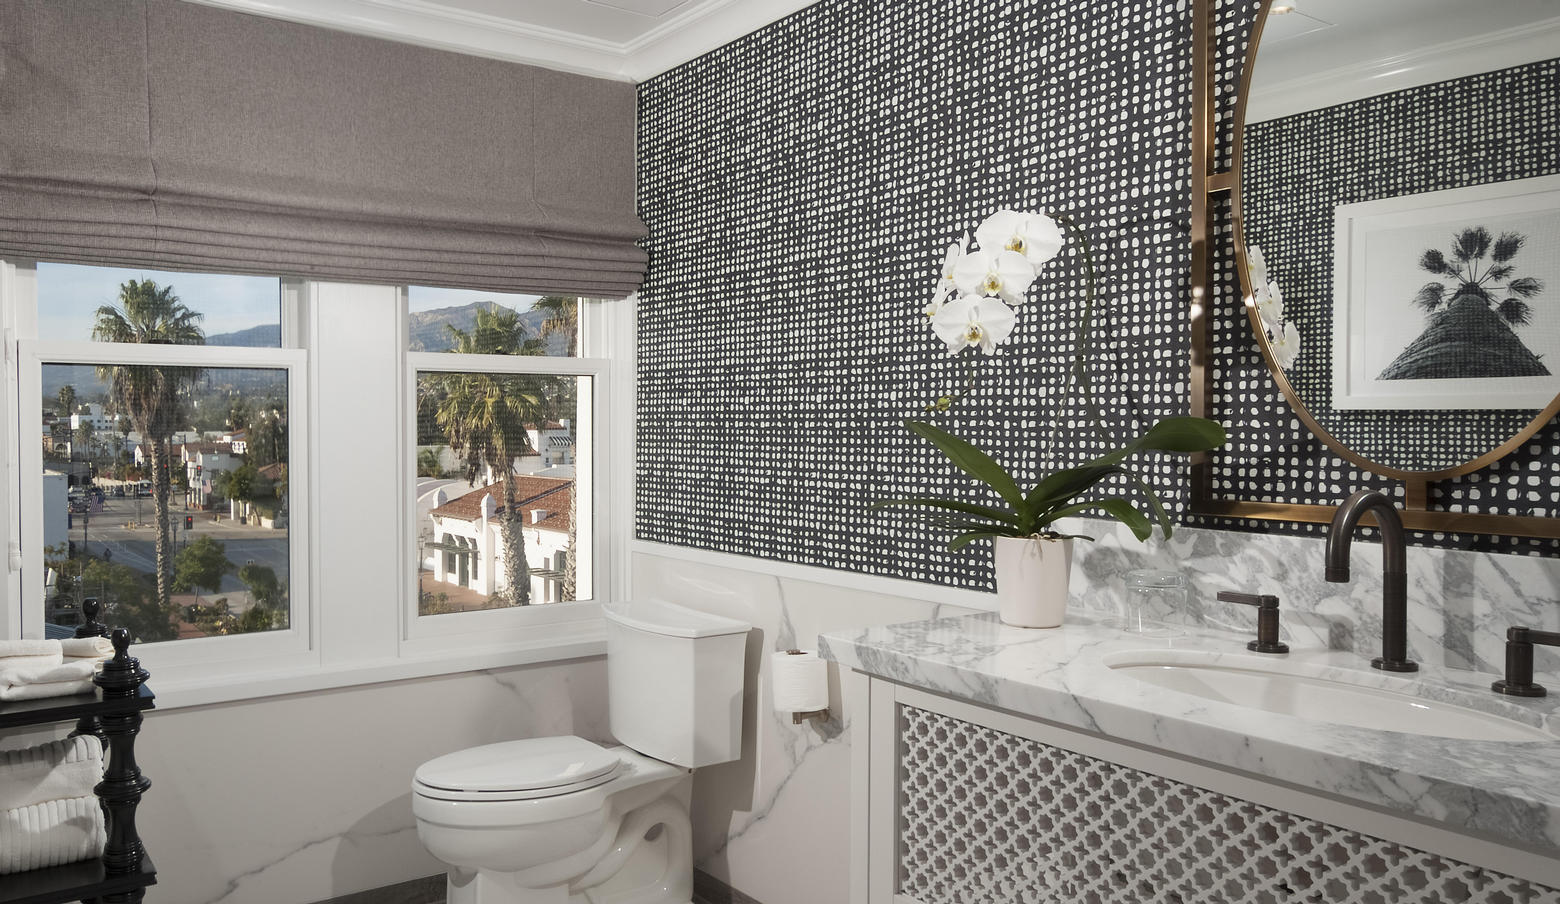 Magellan Luxury Bathroom